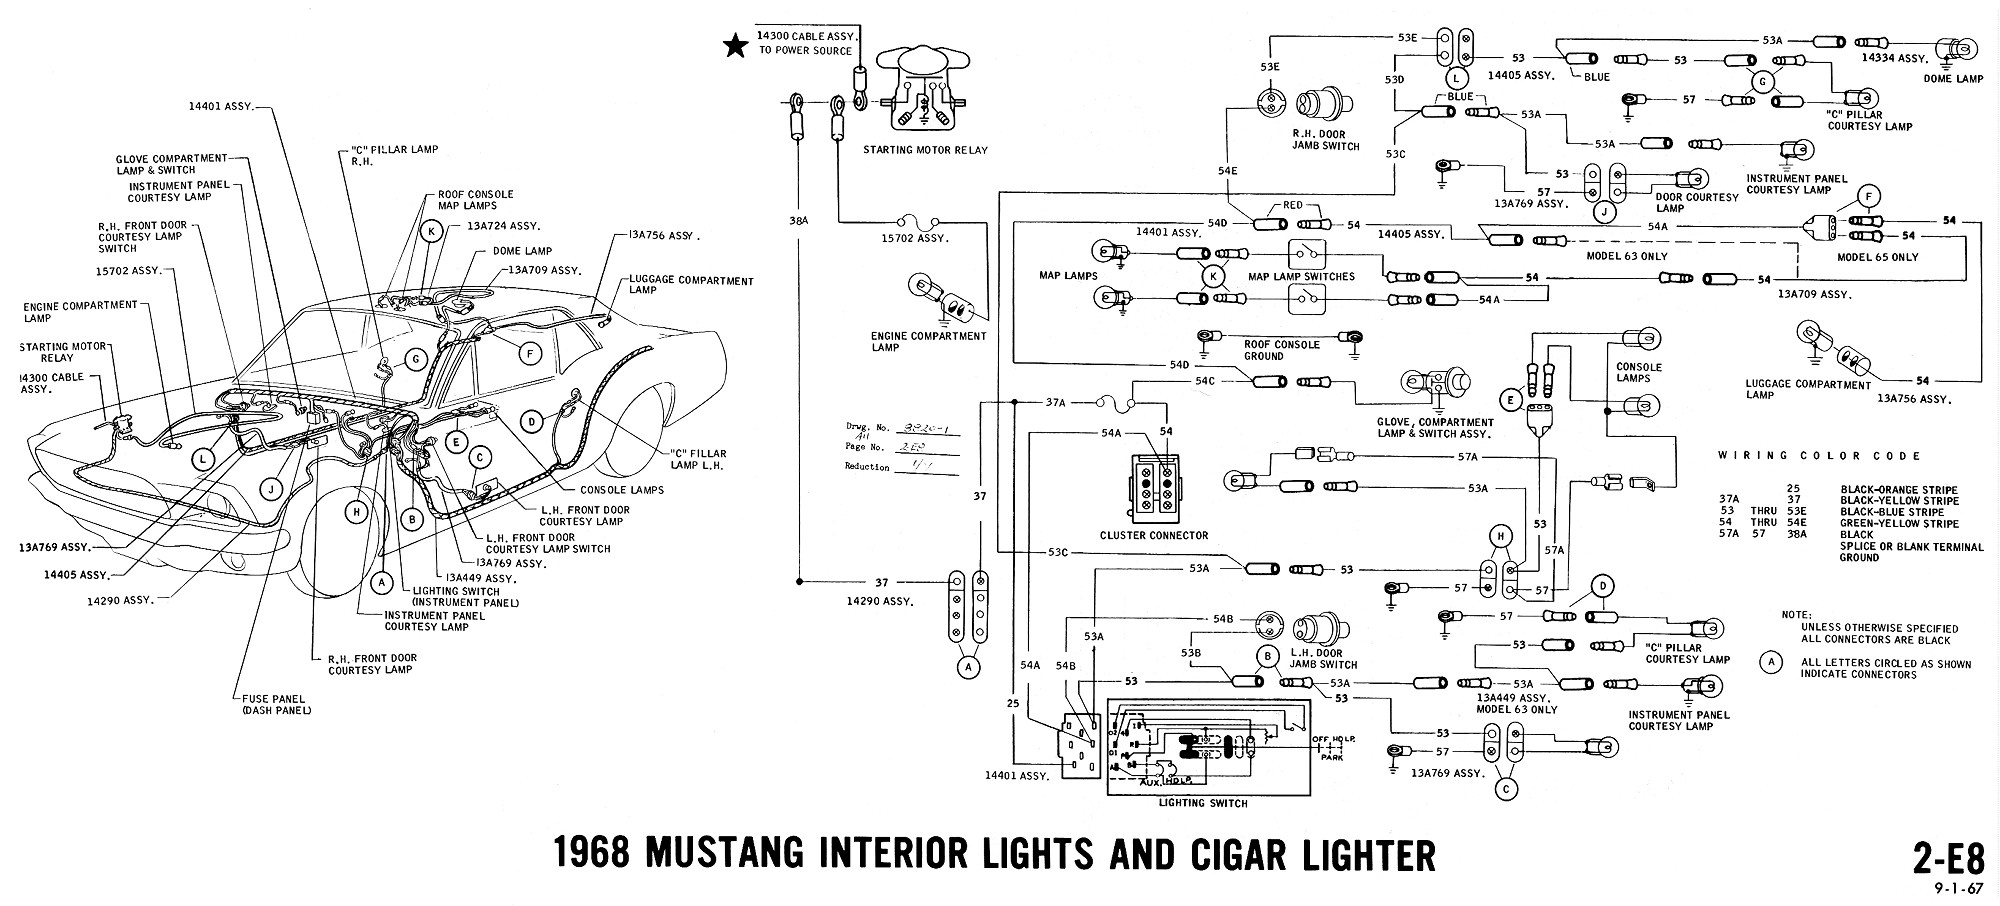 1971 Corvette Wiring Diagram Charging Wire Data Schema 1968 Heater Mustang Diagrams And Vacuum Schematics Wiper Motor 71